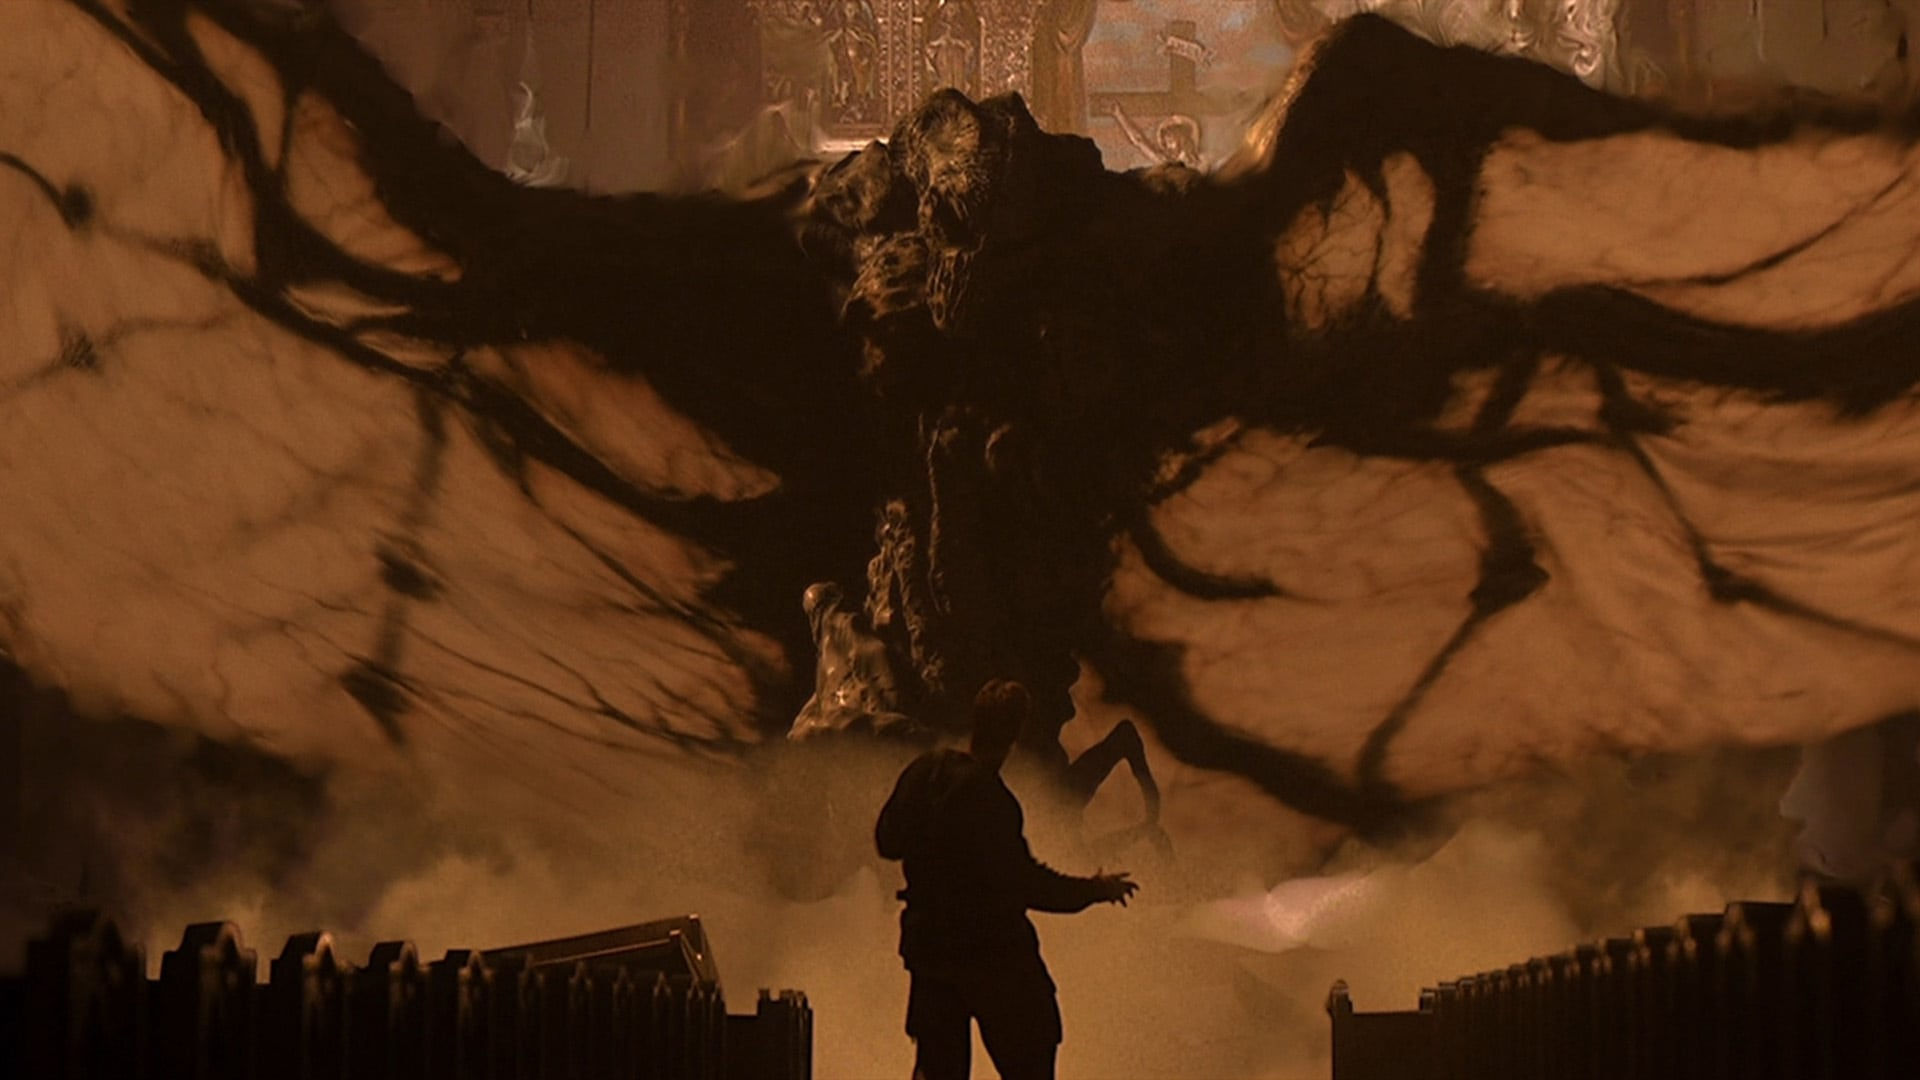 Arnold Schwarzenegger stands up to fight as Satan manifests as a giant CGI effect in End of Days (1999)